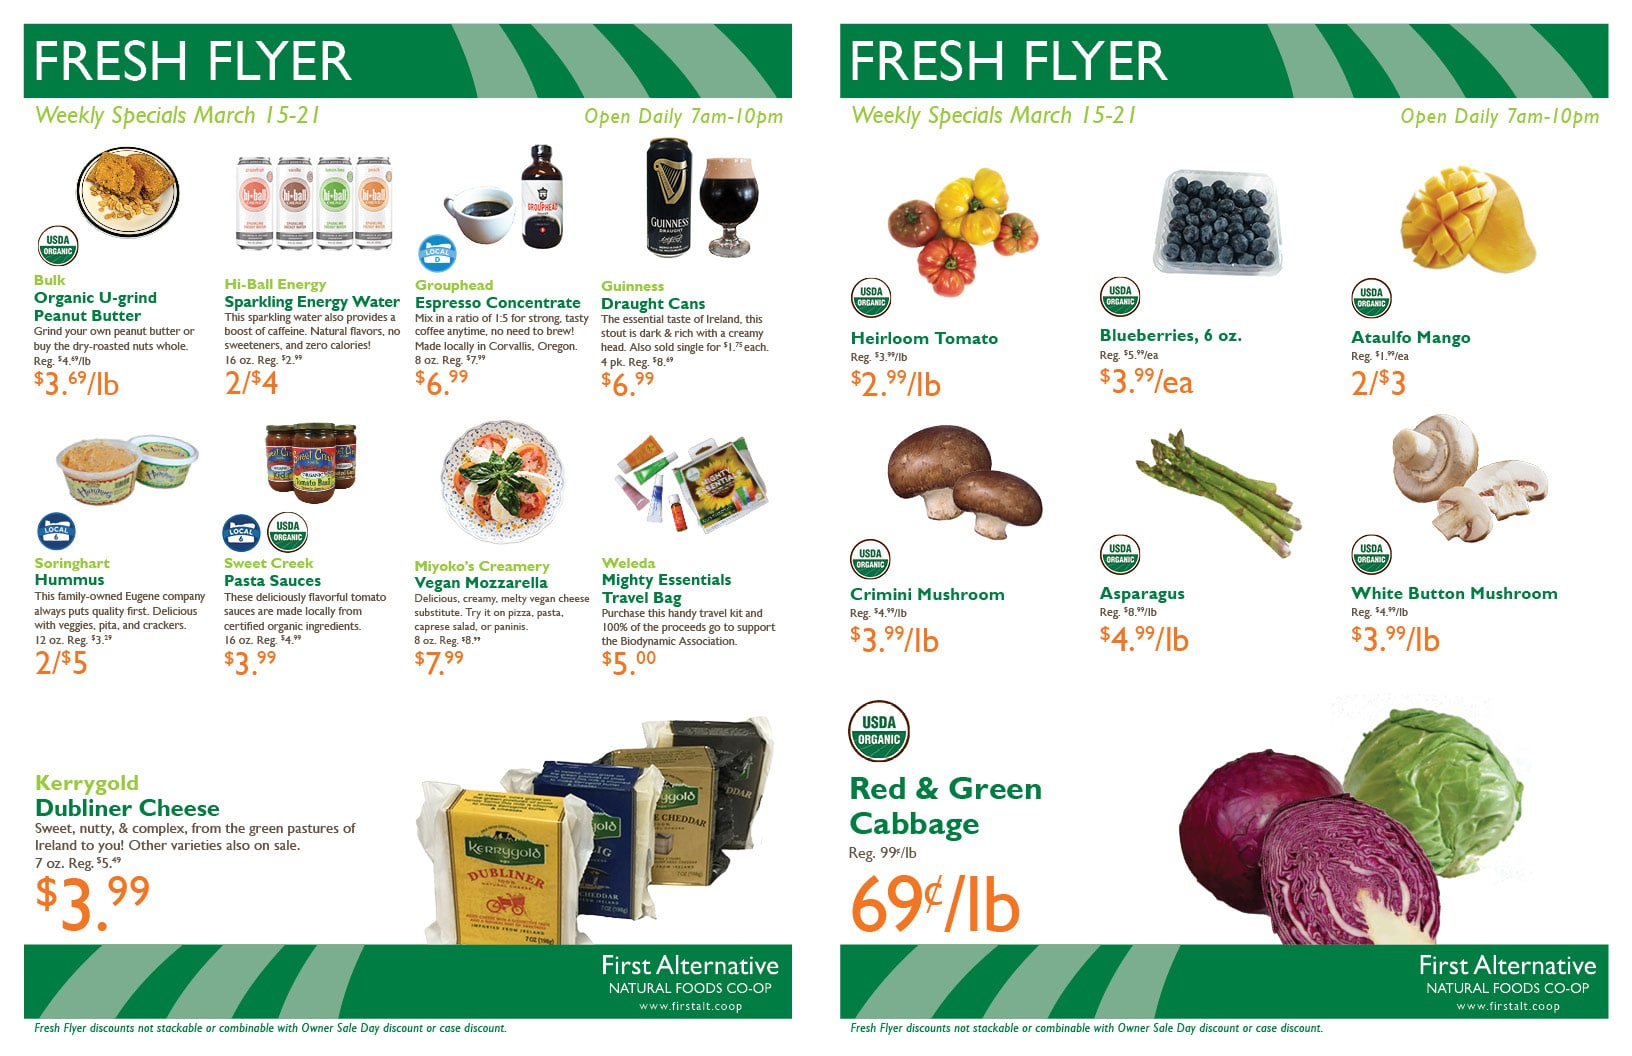 First Alternative Co-op Fresh Flyer Mar. 15-21